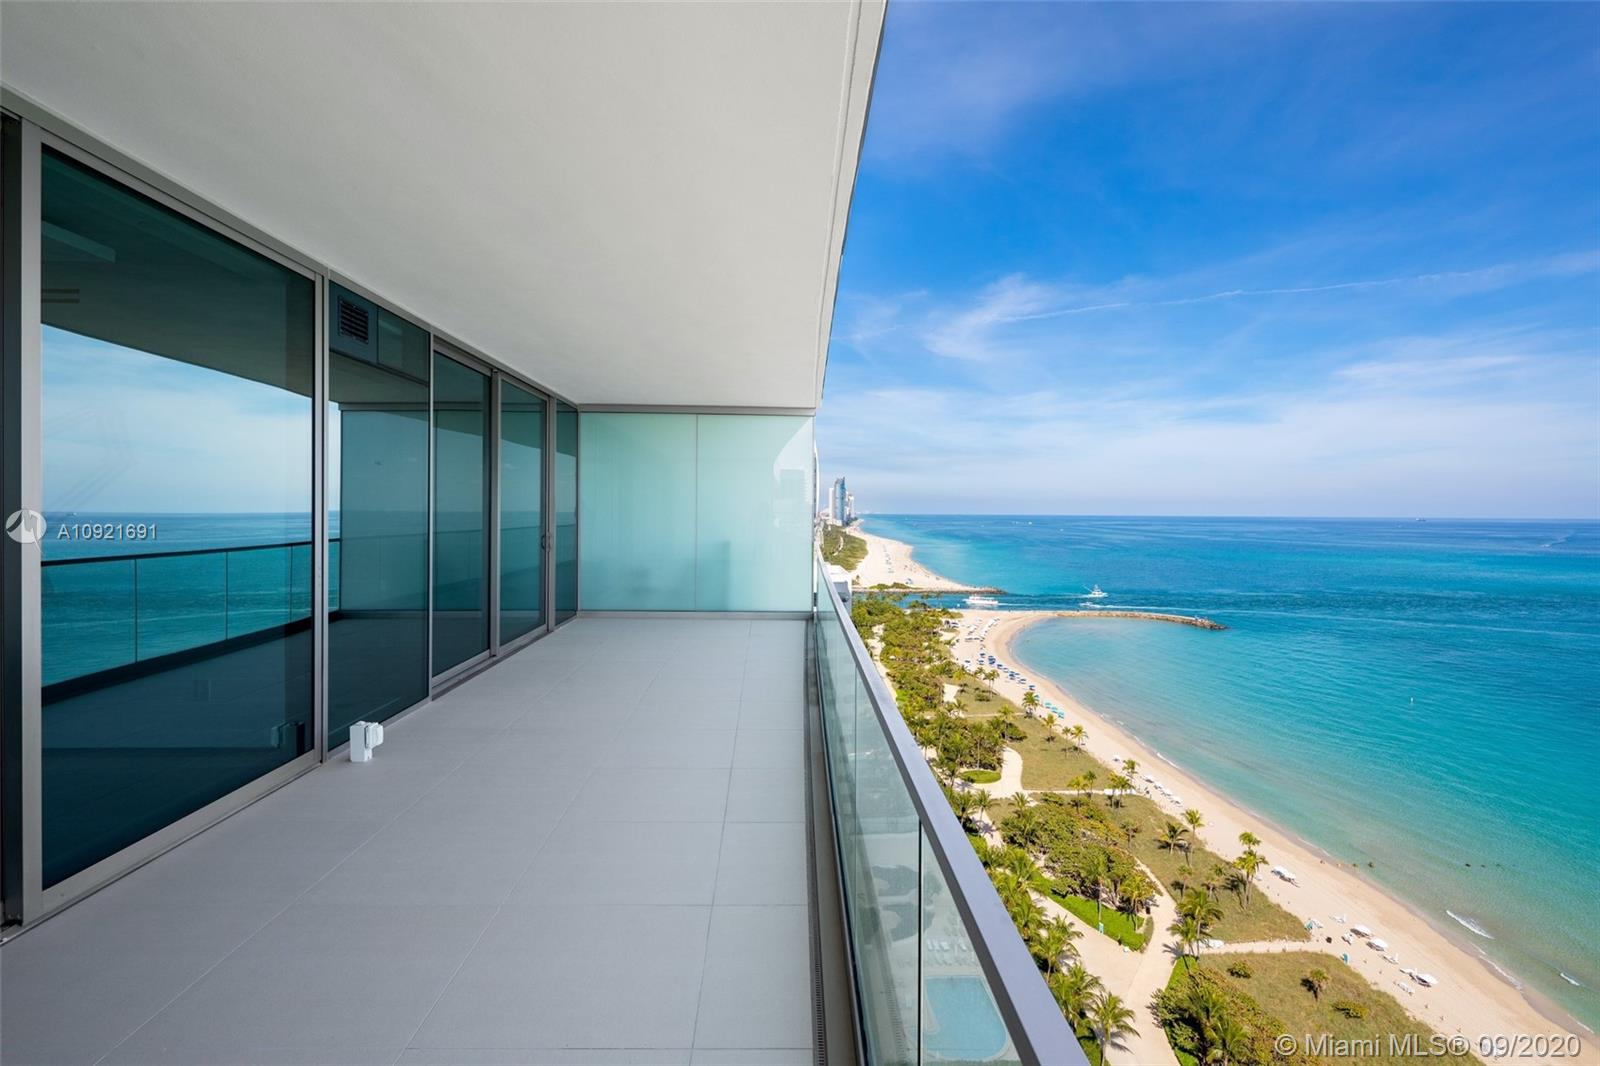 Located in prestigious Oceana Bal Harbour, this stunningly designed high floor flow-thru residence is ocean front luxury living redefined. Sold furnished with the latest Minotti line, this sleek & modern 3,264 SF flow-thru residence boasts unobstructed views to the Atlantic Ocean, Biscayne Bay, & Downtown Miami skyline. Enjoy complete privacy inside your residence & as you step out onto your 9 Ft. deep terraces. Sophisticated elegance abounds with exquisite stone flooring throughout & the latest Italian Doors & Closets. Gourmet Kitchen with Dada Cabinetry & Gaggenau appliances. Oceana's 5-star amenities cater to a select few: beautifully manicured grounds, private restaurant, beach service, tennis courts, museum quality art with sculptures by Jeff Koons. Unit Designed by Cleo Bell.